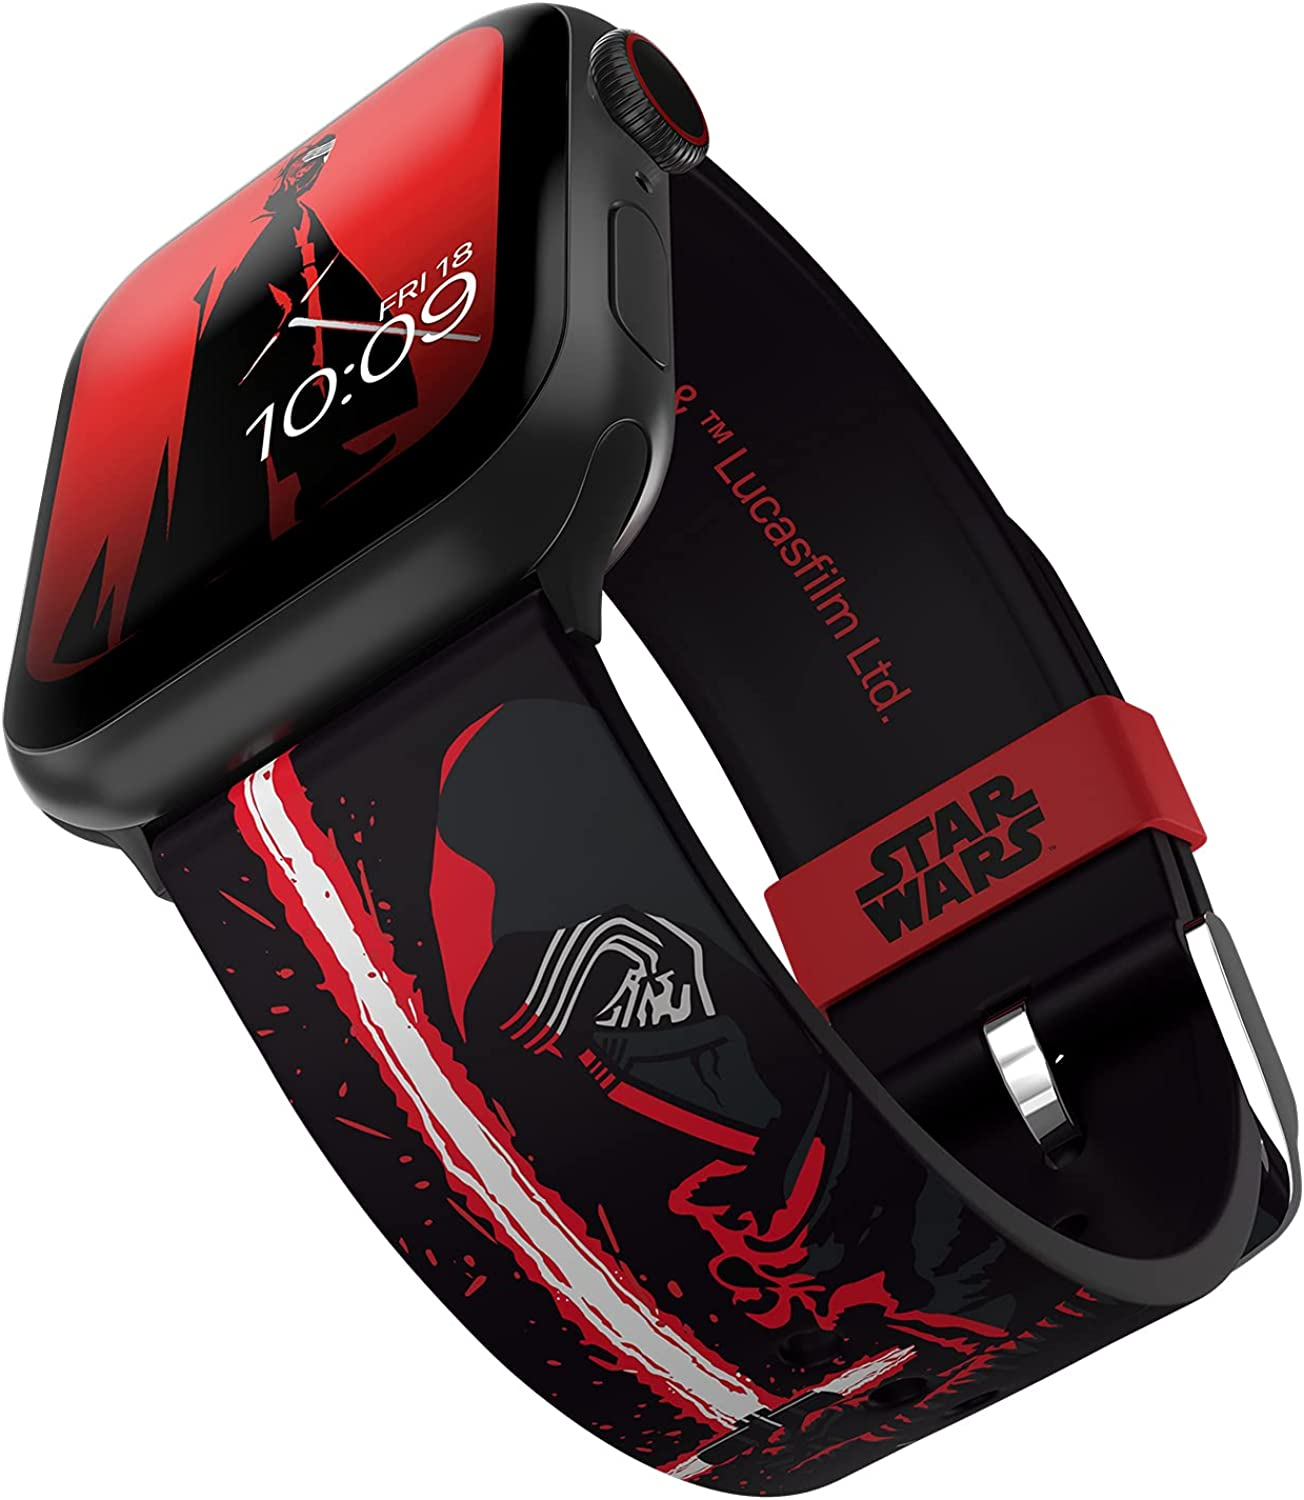 STAR WARS - Kylo Ren Edition Smartwatch Band - Officially Licensed, Compatible with Apple Watch (not Included) - Fits 38mm, 40mm, 42mm and 44mm